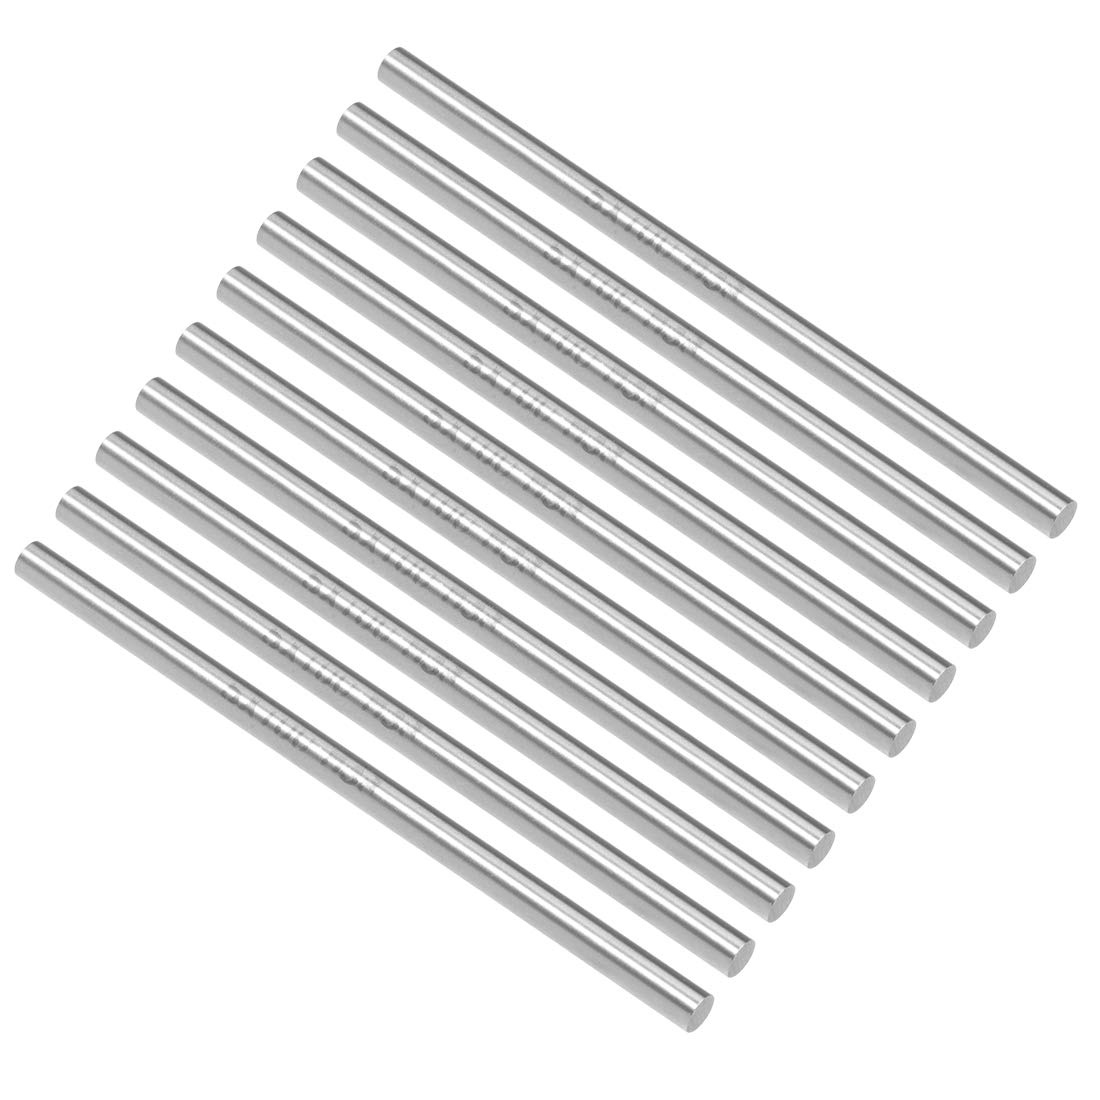 10 Pcs for Shaft Miniature Axle DIY Craft Tool sourcing map Round Rod 1.5mm Diameter 100mm Length HSS Lathe Bar Stock